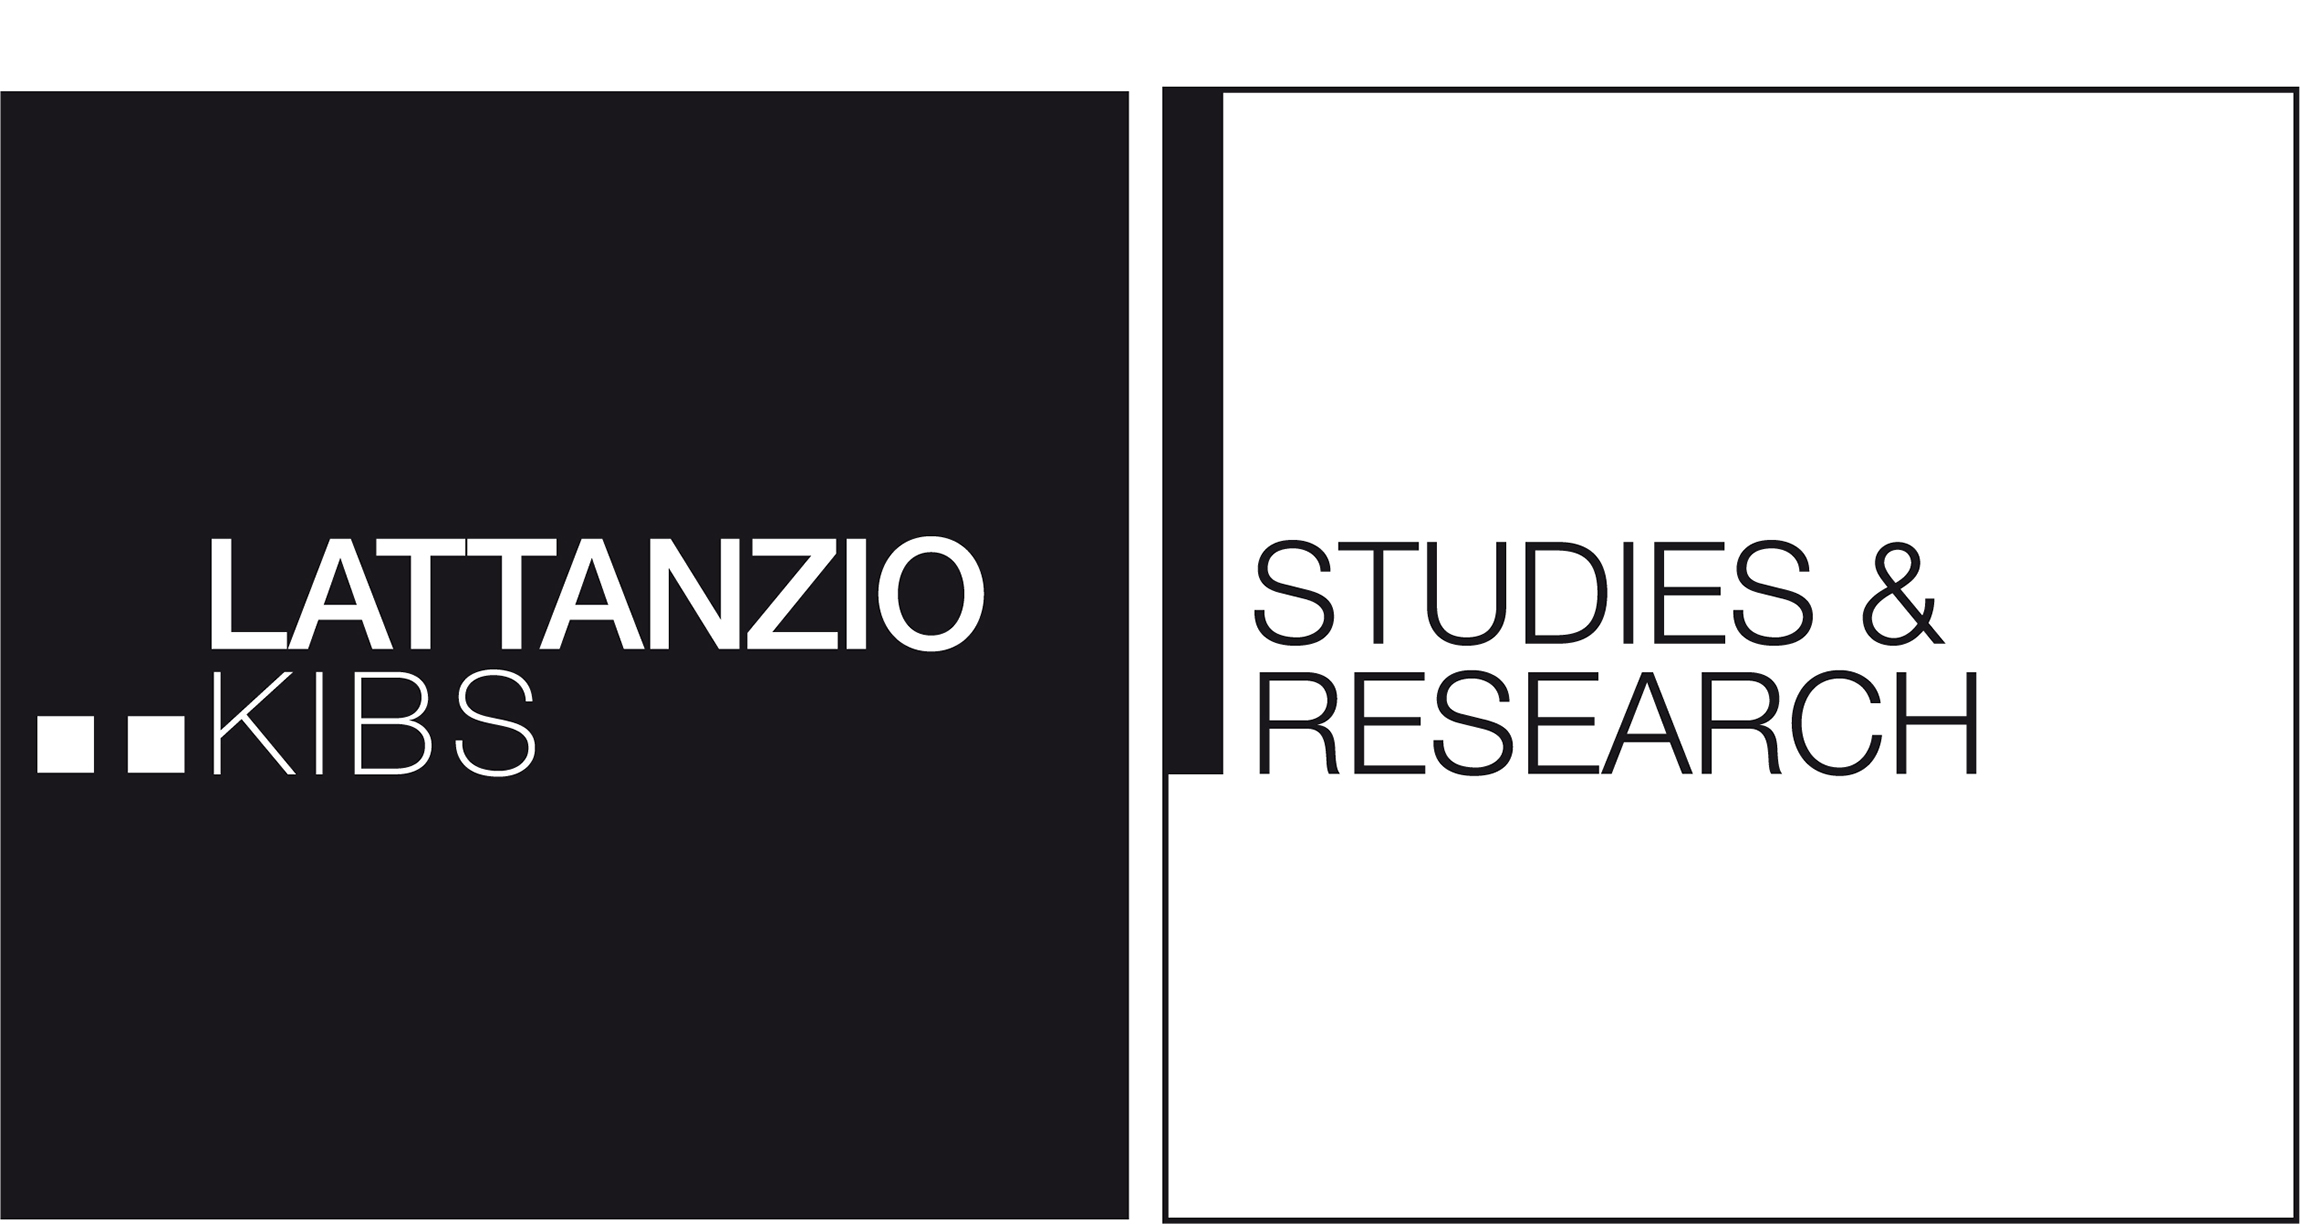 STUDIES & RESEARCH